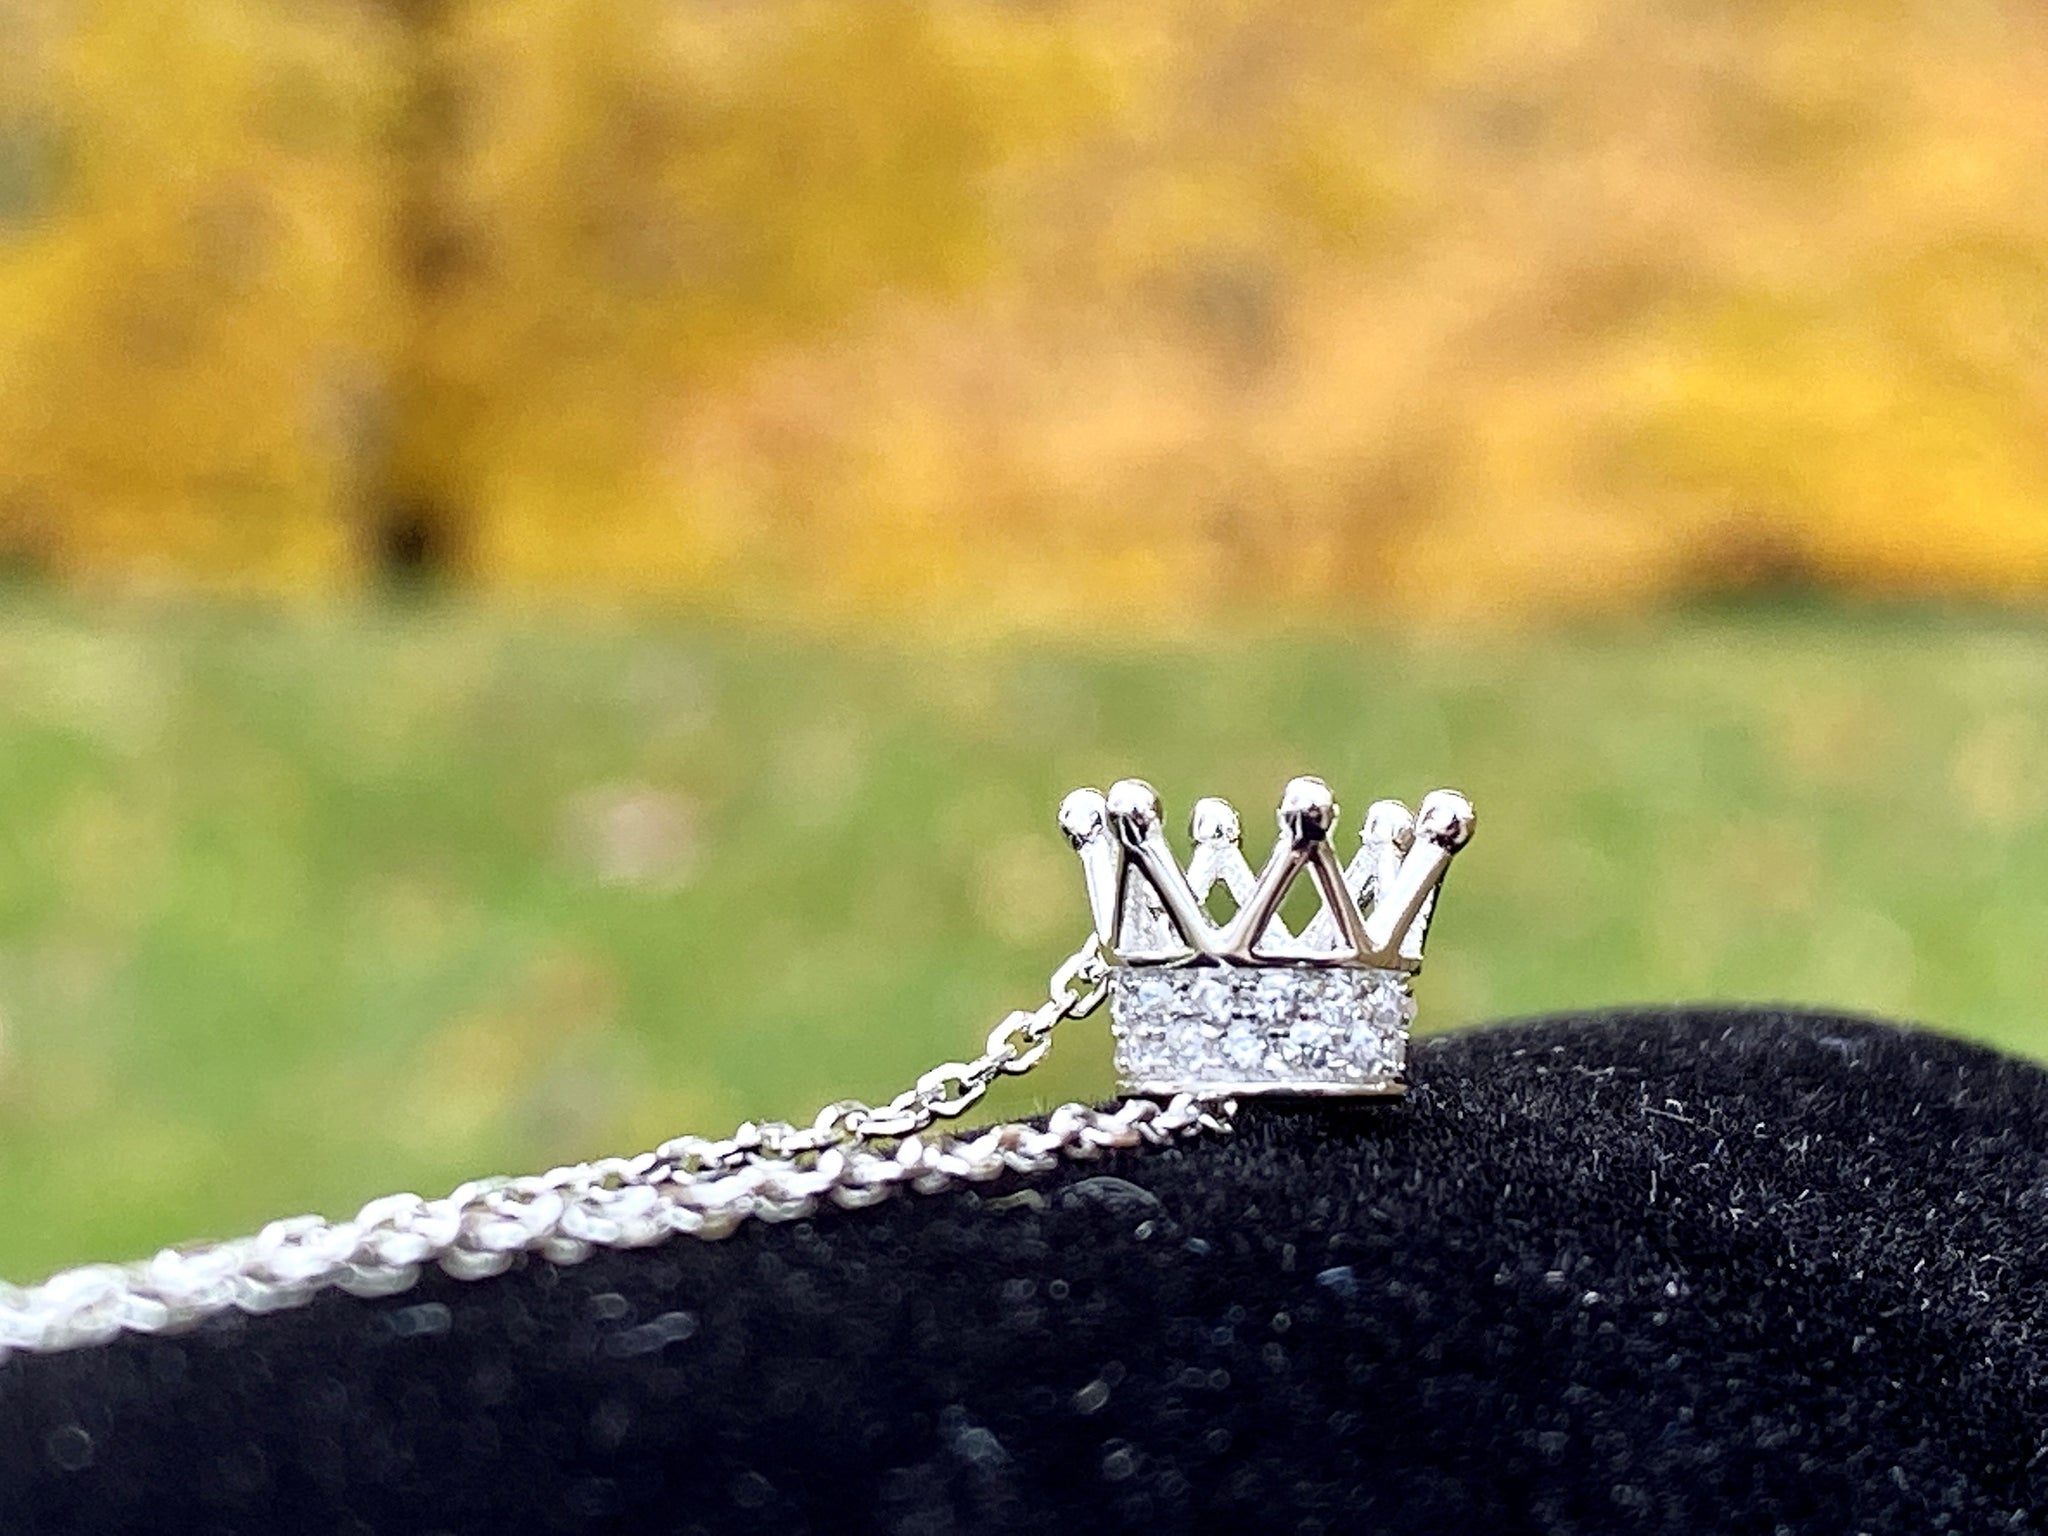 I'M THE QUEEN - Necklace - Love Letter Jewelry